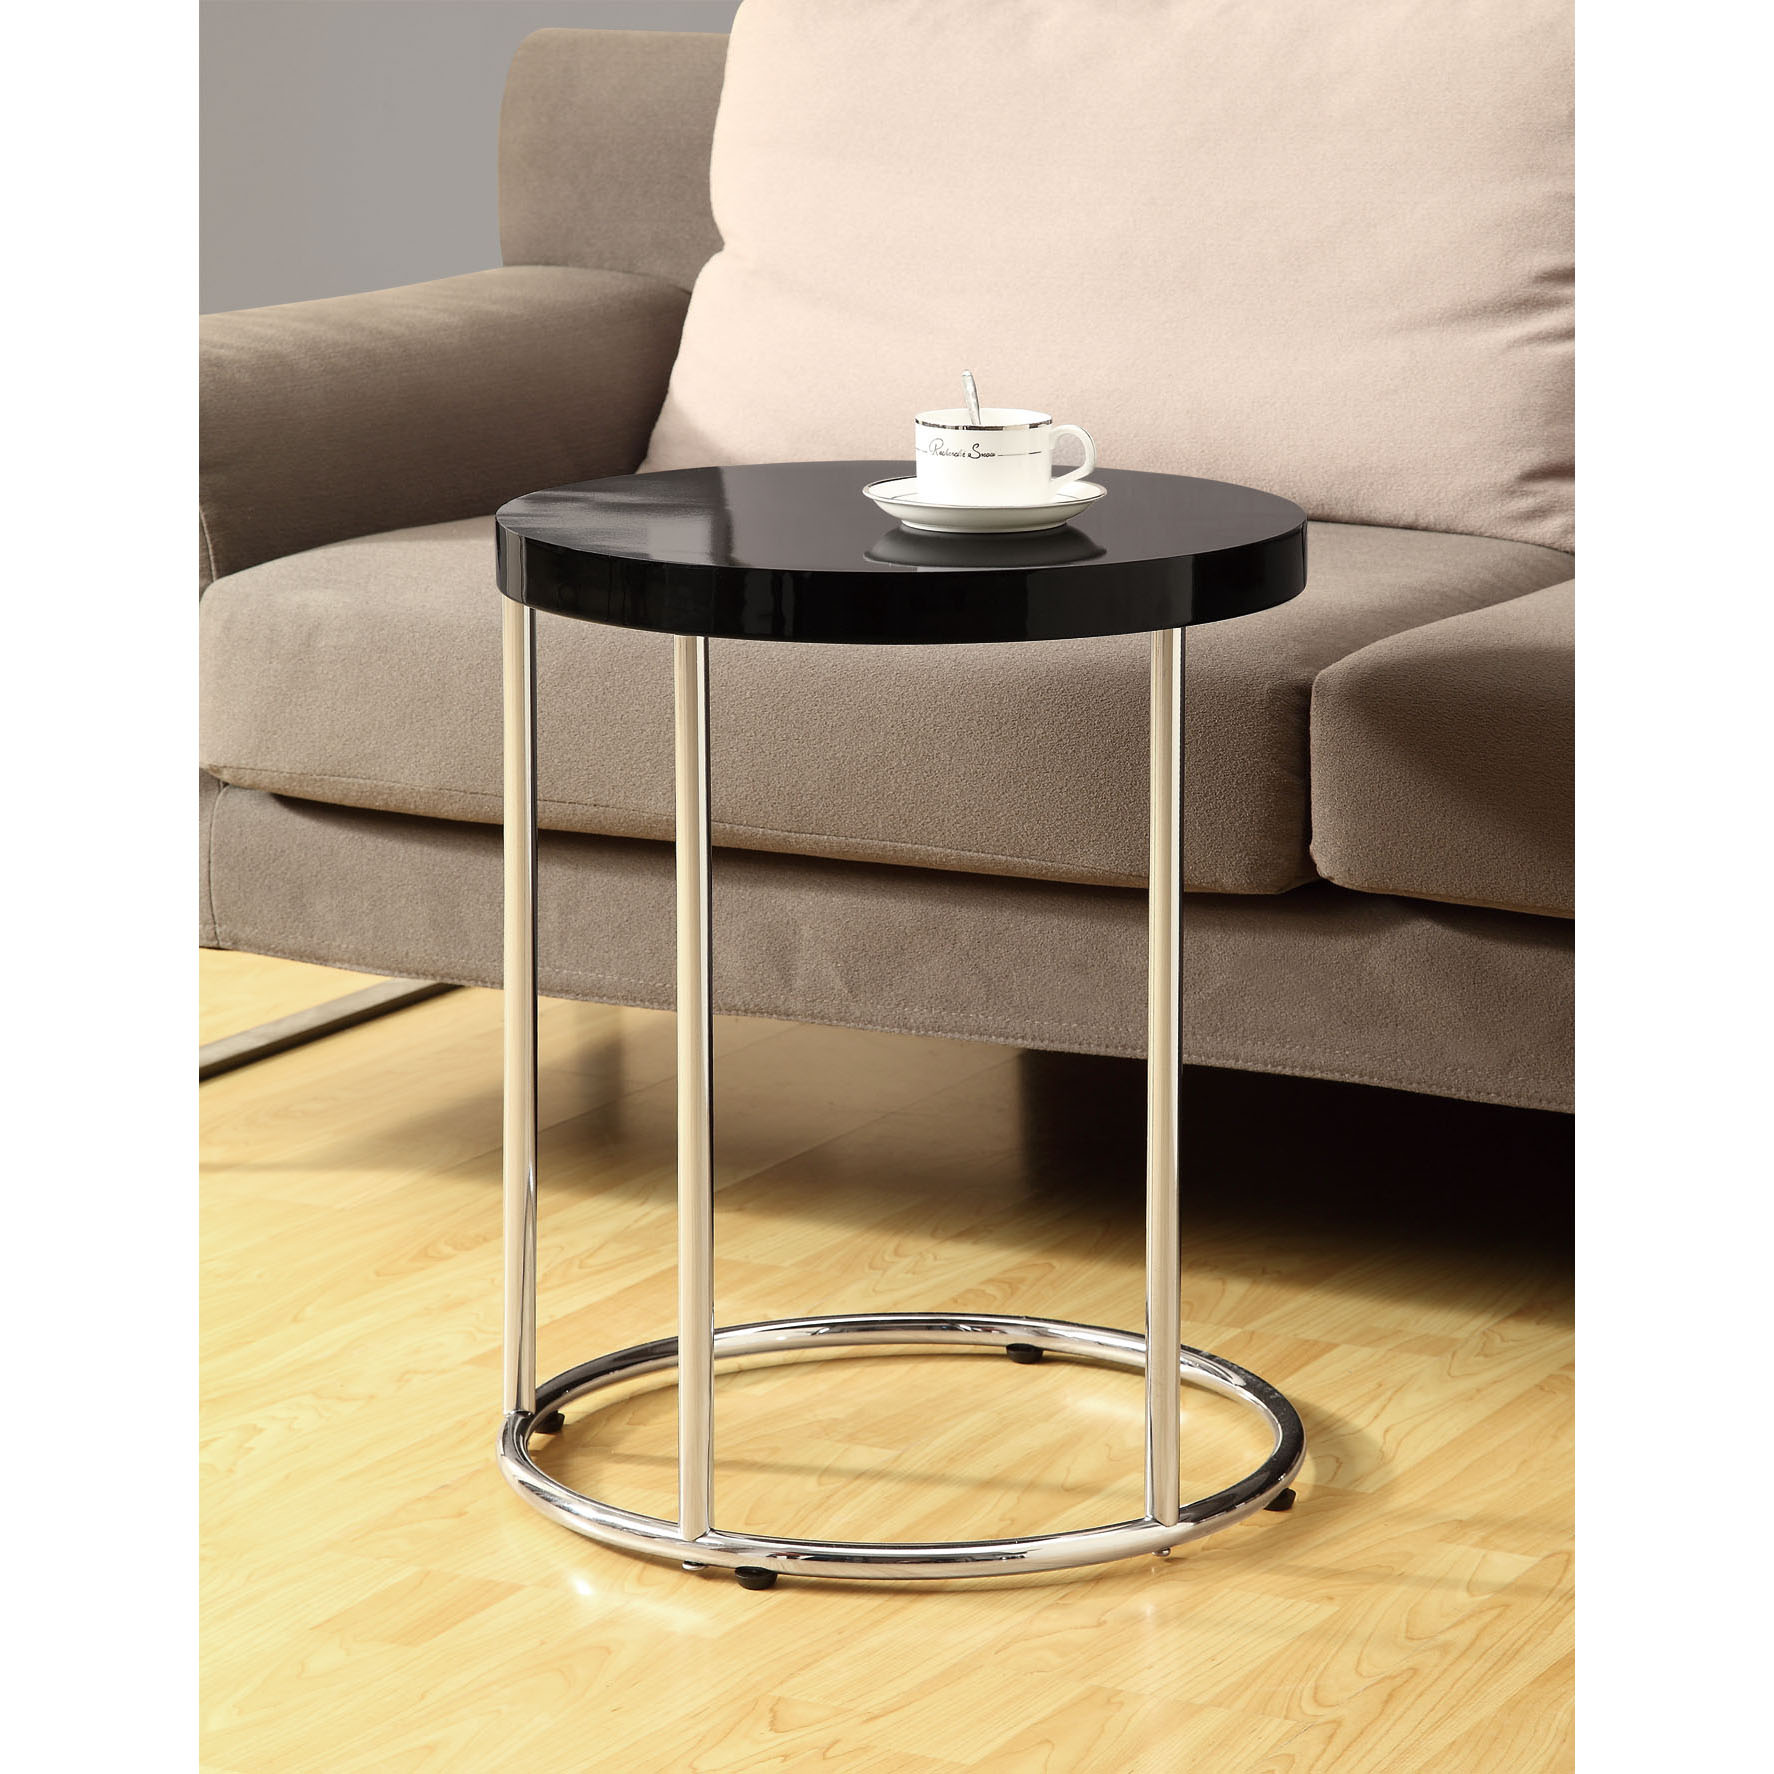 tall accent table tables decoration home maple side with drawer ikea blue patio west elm dining room lighting mid century walnut bath wedding registry white top coffee storage